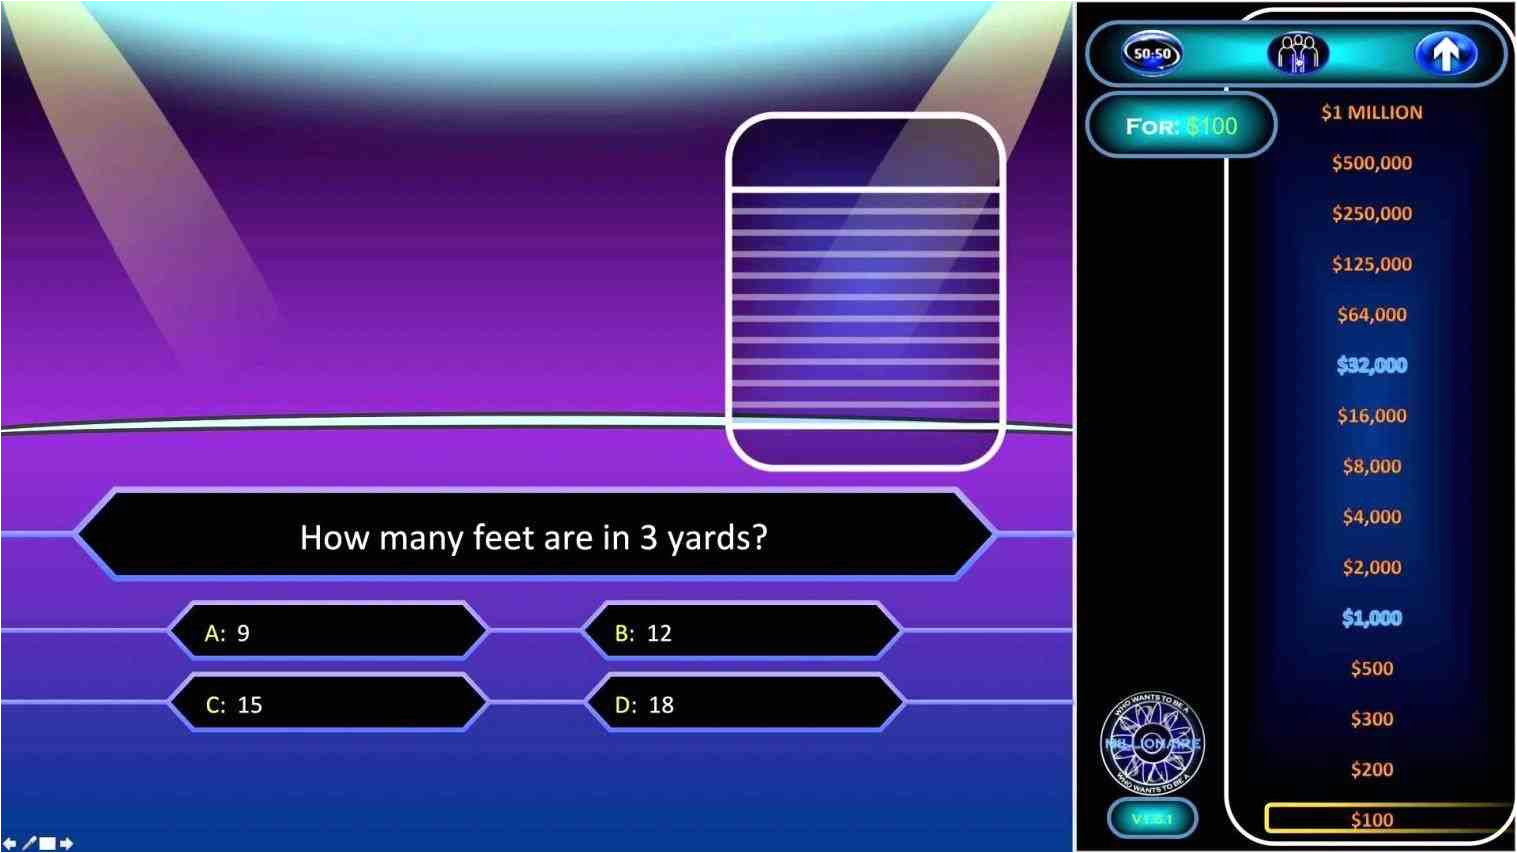 who millionaire game template wants to be a millionaire powerpoint template with sound rhaceeducationcom powerpoint millionaire game template jpg